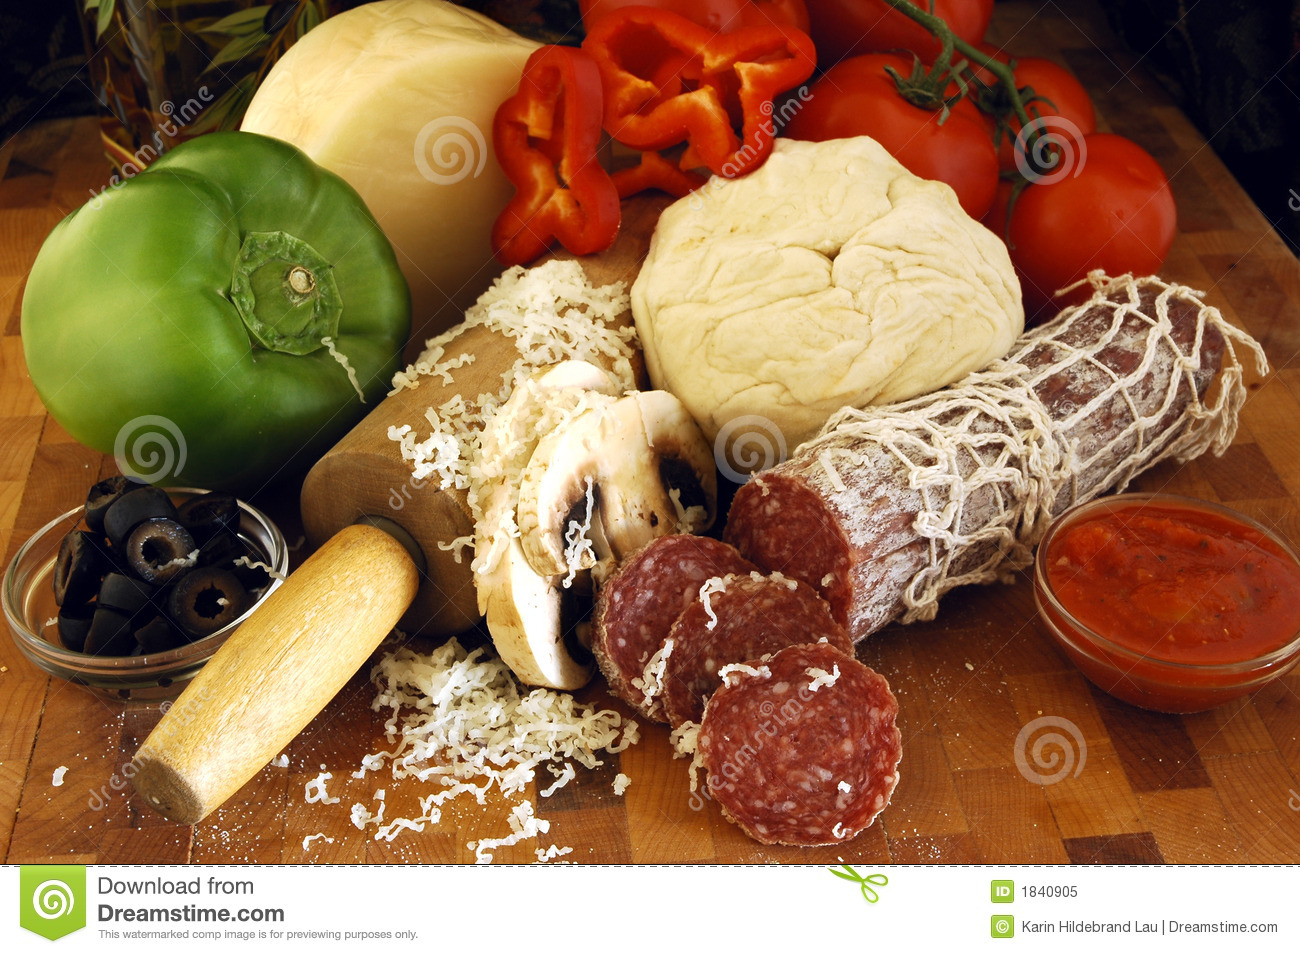 Pizza Ingredients Royalty Free Stock Photo - Image: 1840905